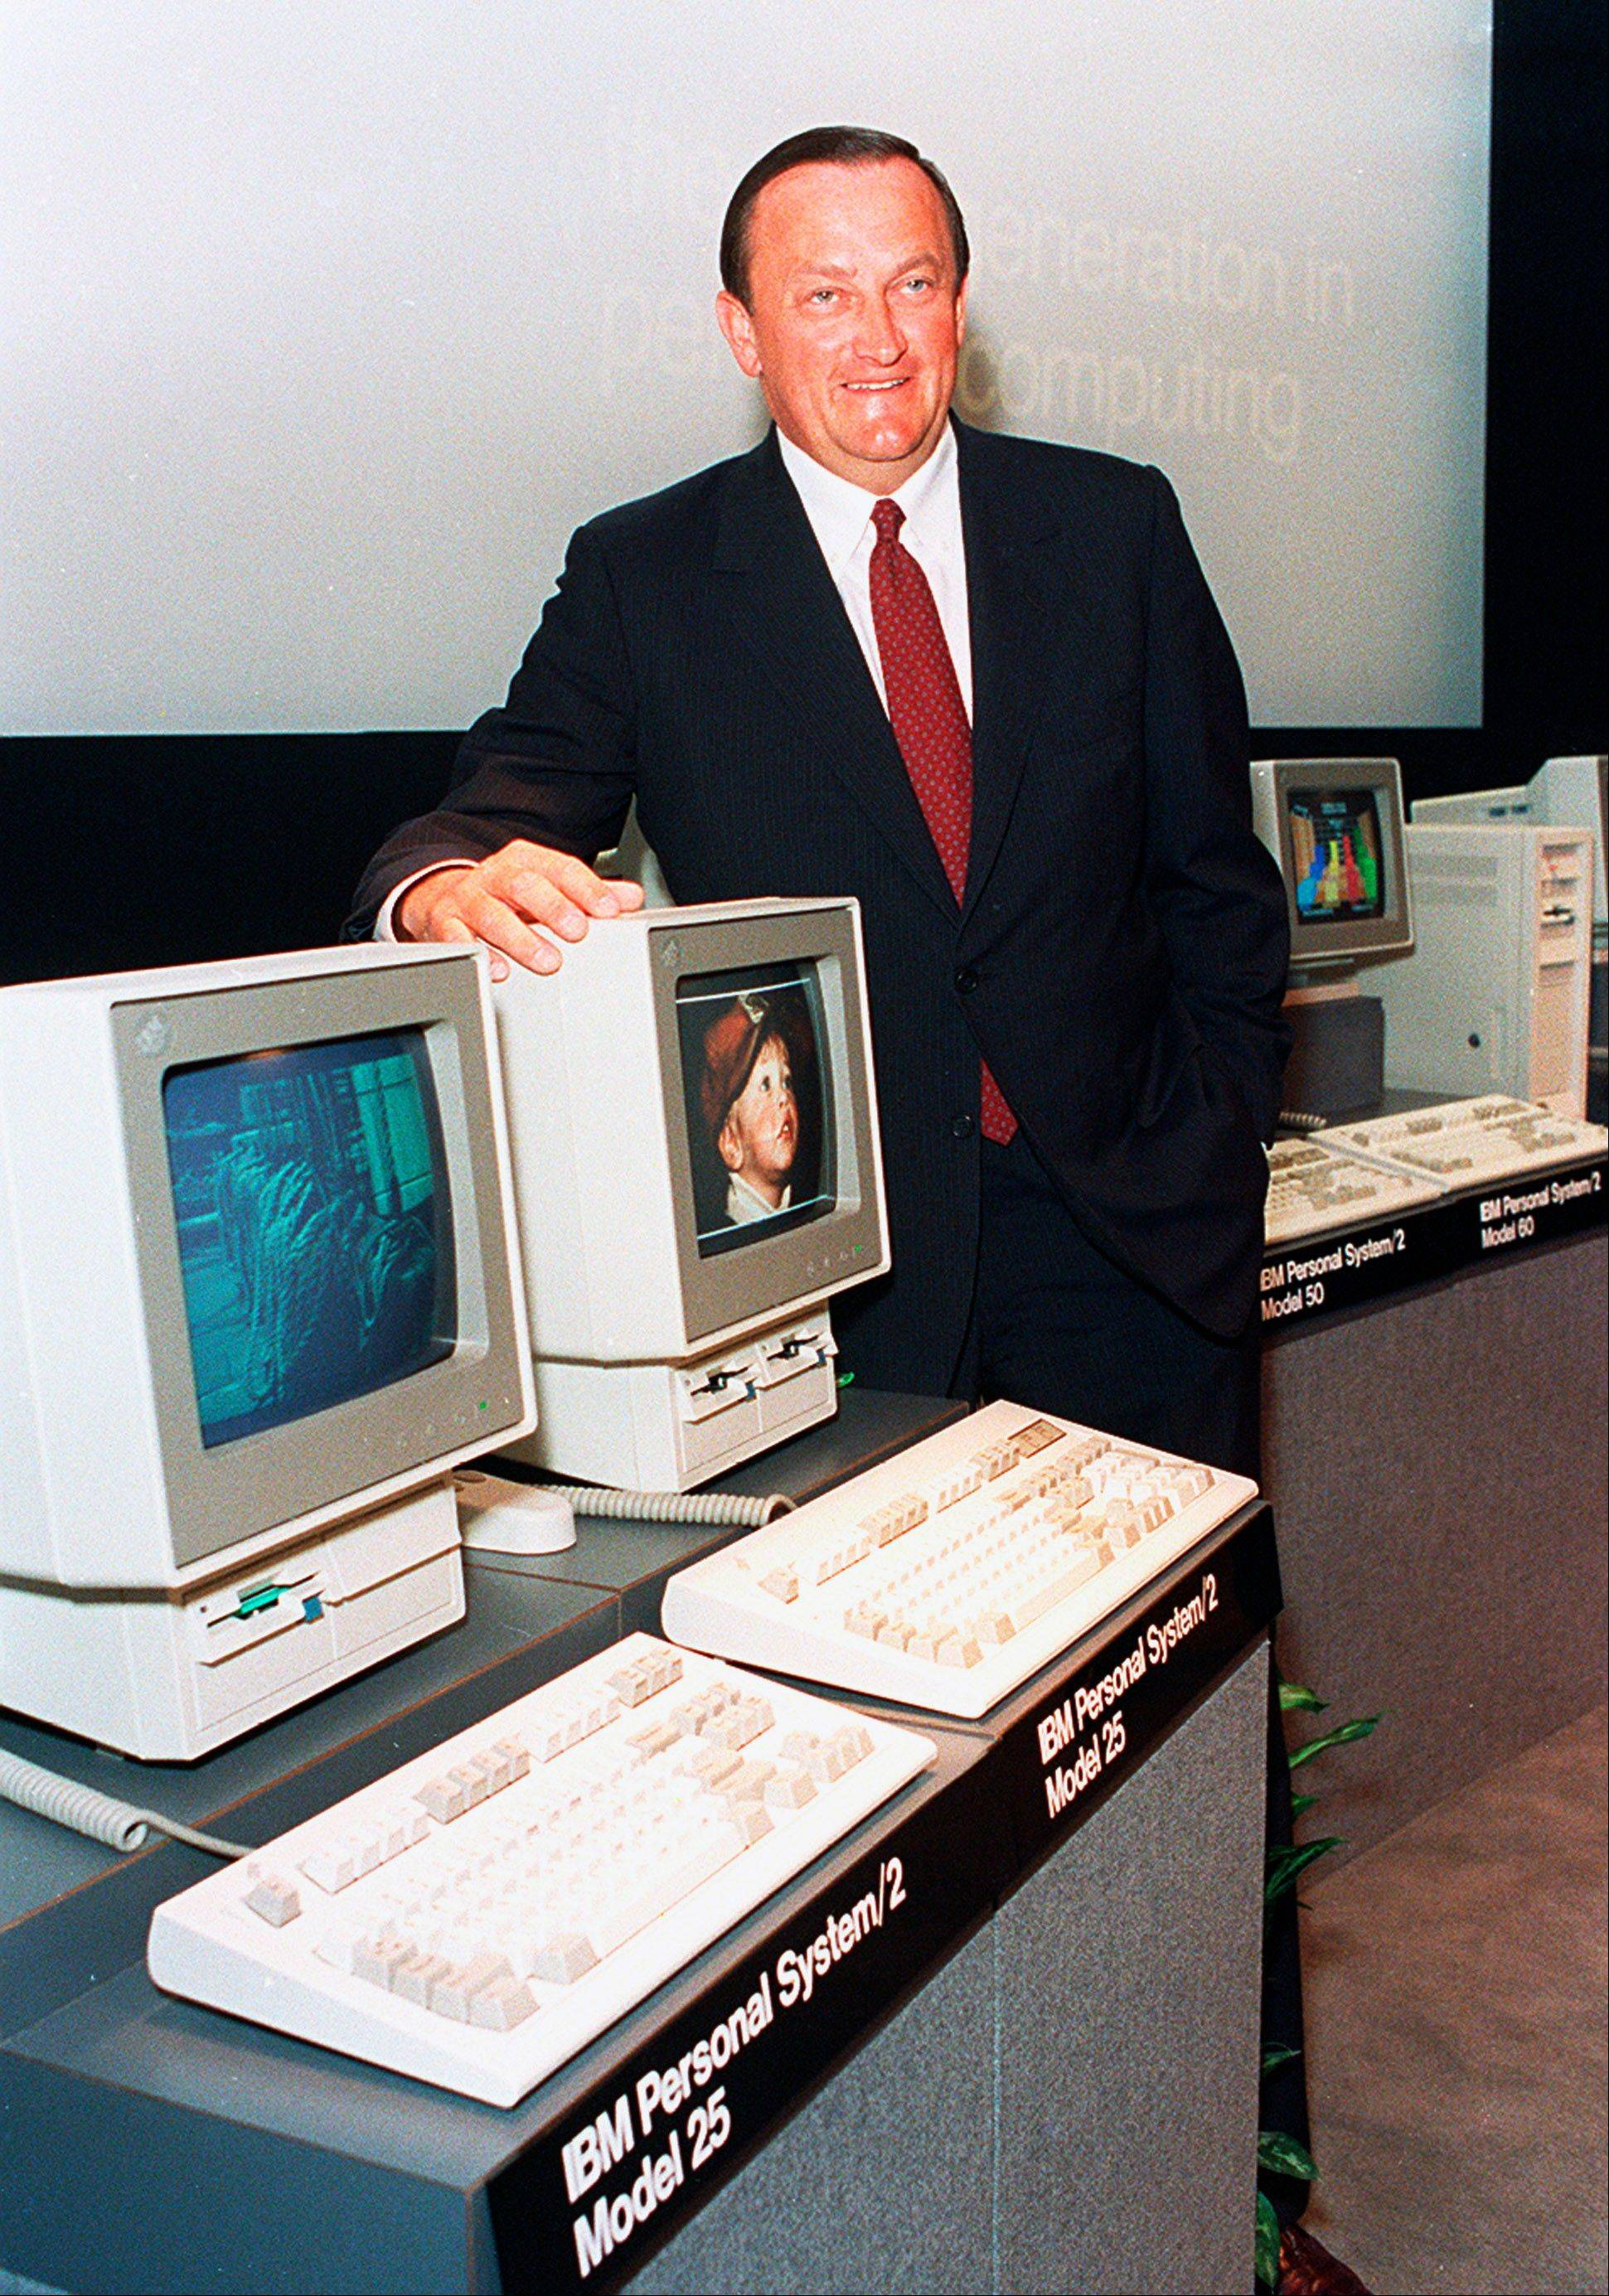 William C. Lowe, a vice president at IBM, poses with two of the company's newest Personal System/2 computers, the model 25, at the unveiling in New York City.